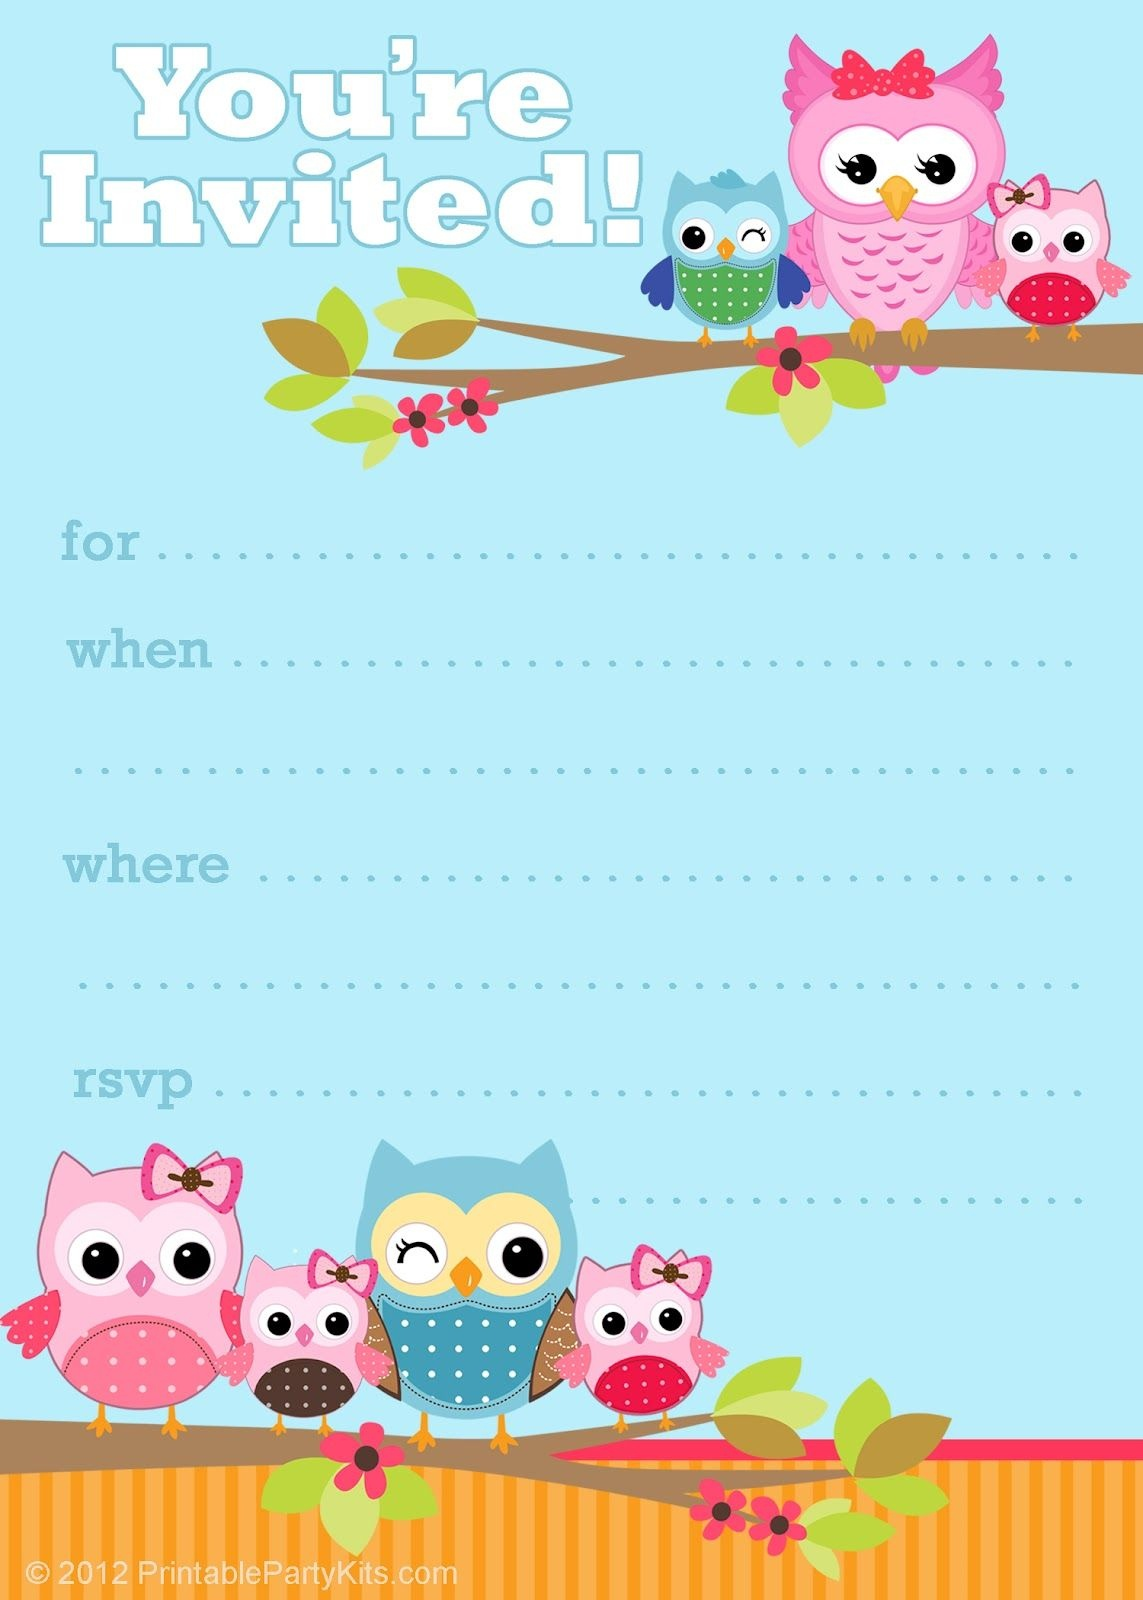 Free Printable Party Invitations: Cute Owl Invitations   Kids - Free Printable Birthday Invitations Pinterest